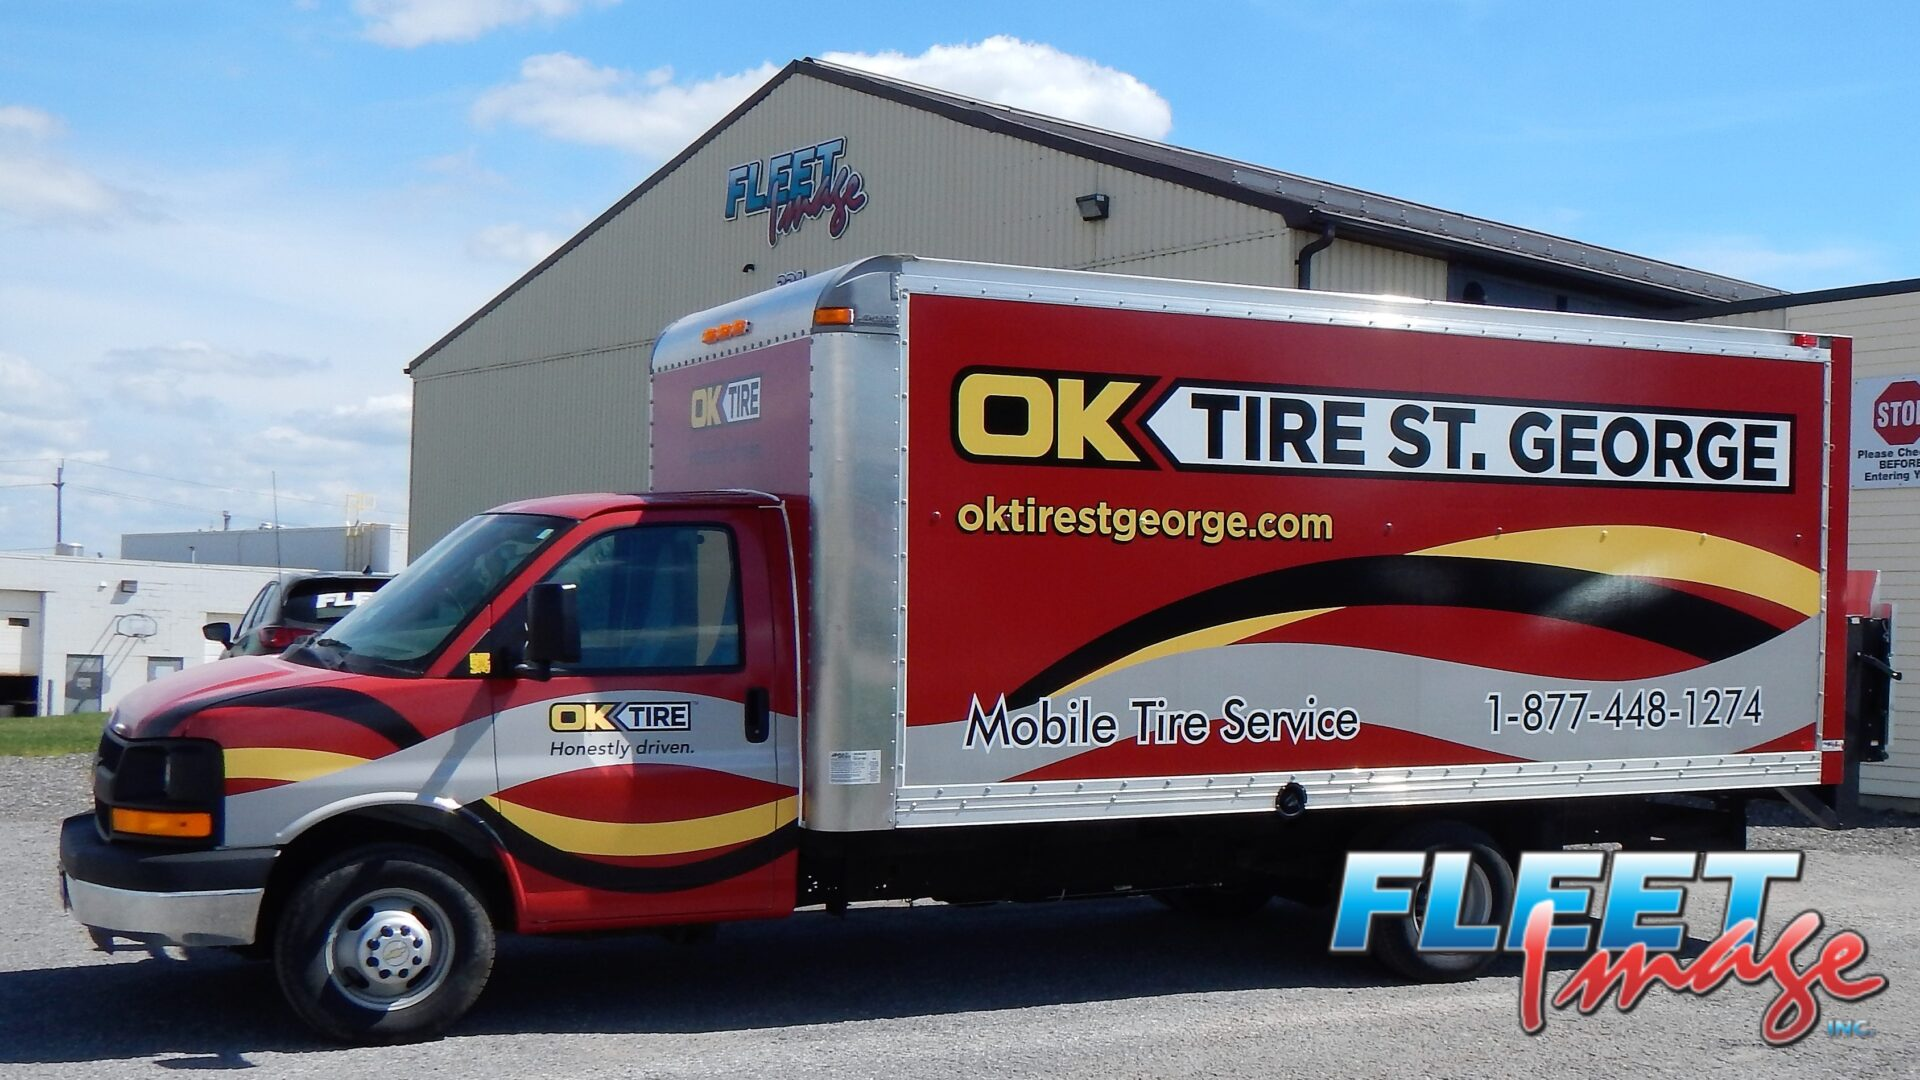 OK TIRE ST. GEORGE decal sticker on a truck